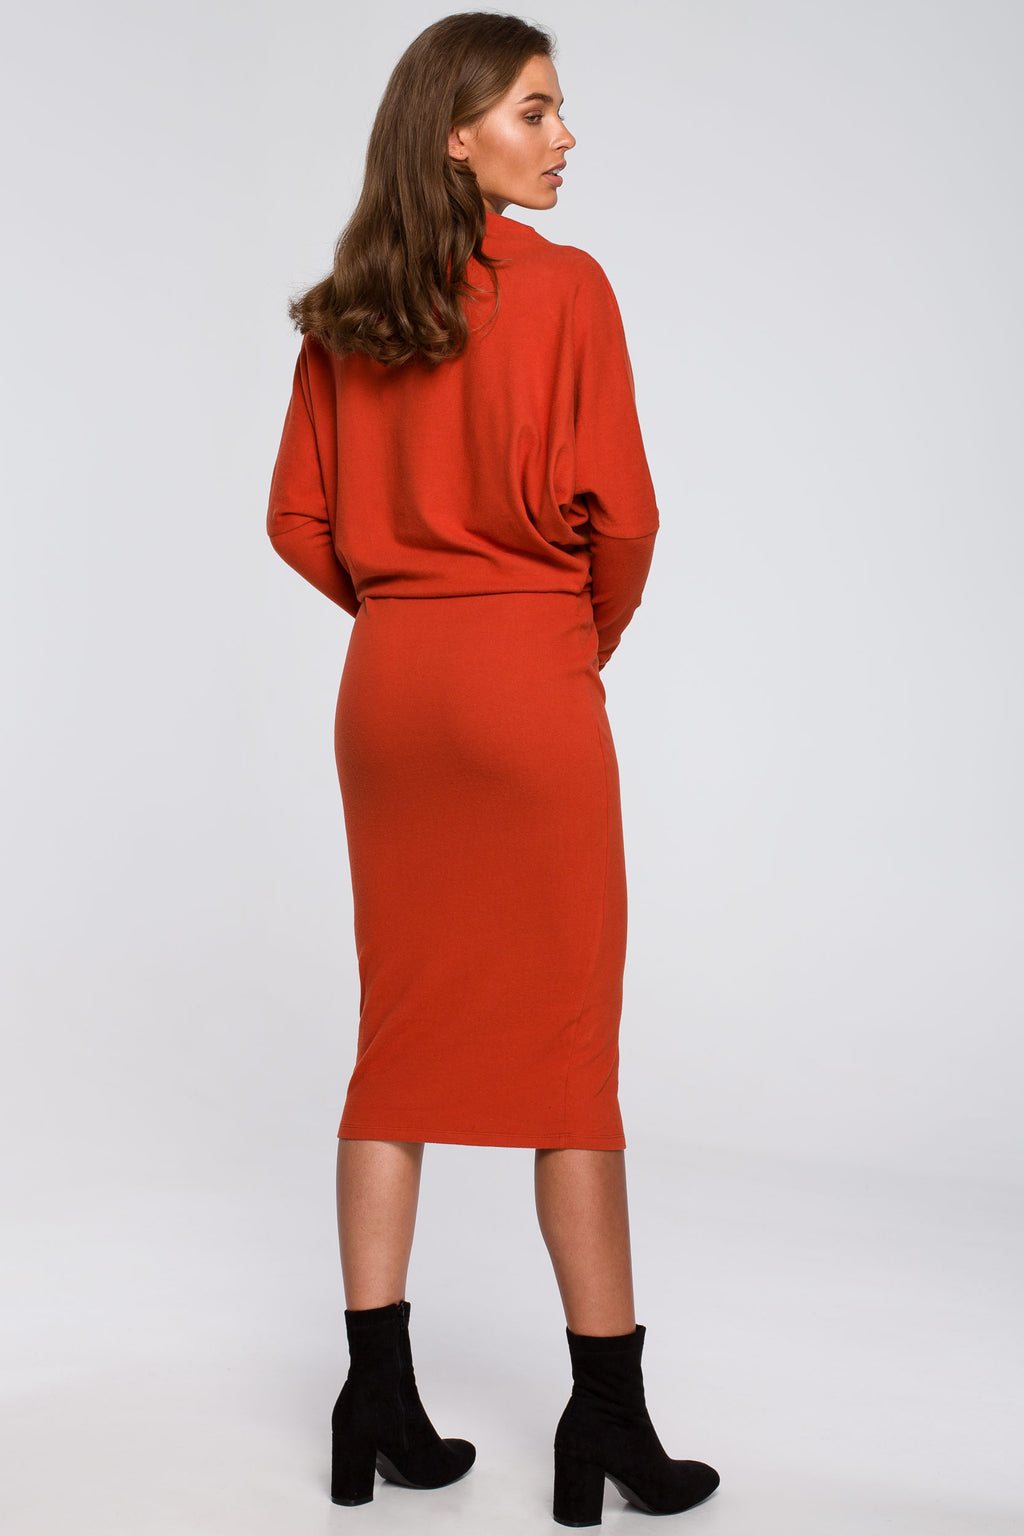 Ginger Cotton Midi Dress With Draped Neckline - So Chic Boutique